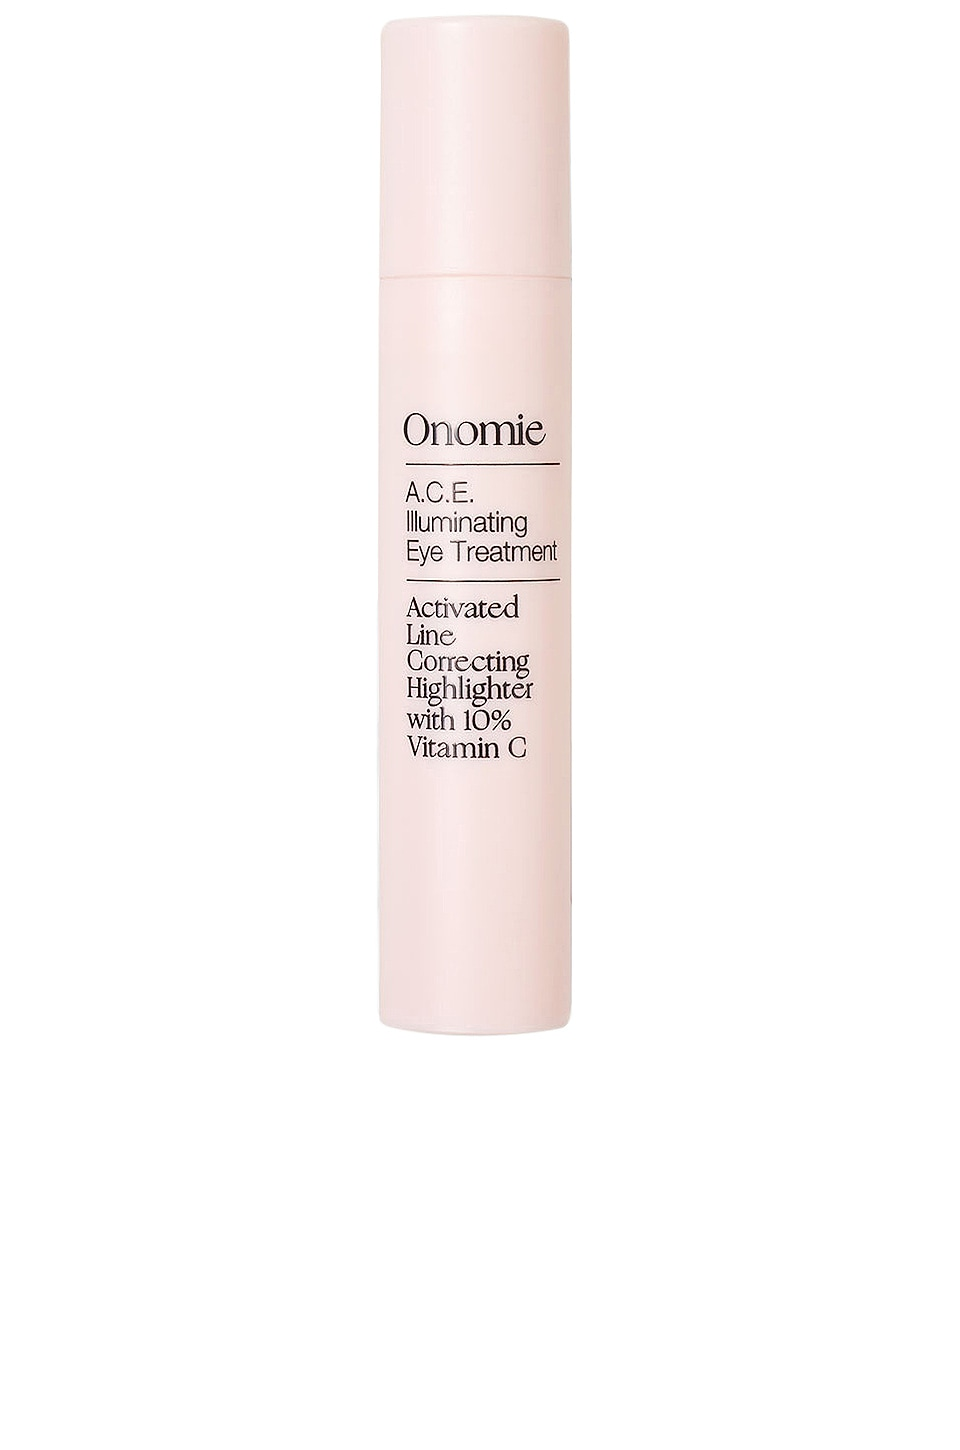 Onomie A.C.E. Illuminating Eye Treatment in Lovelace